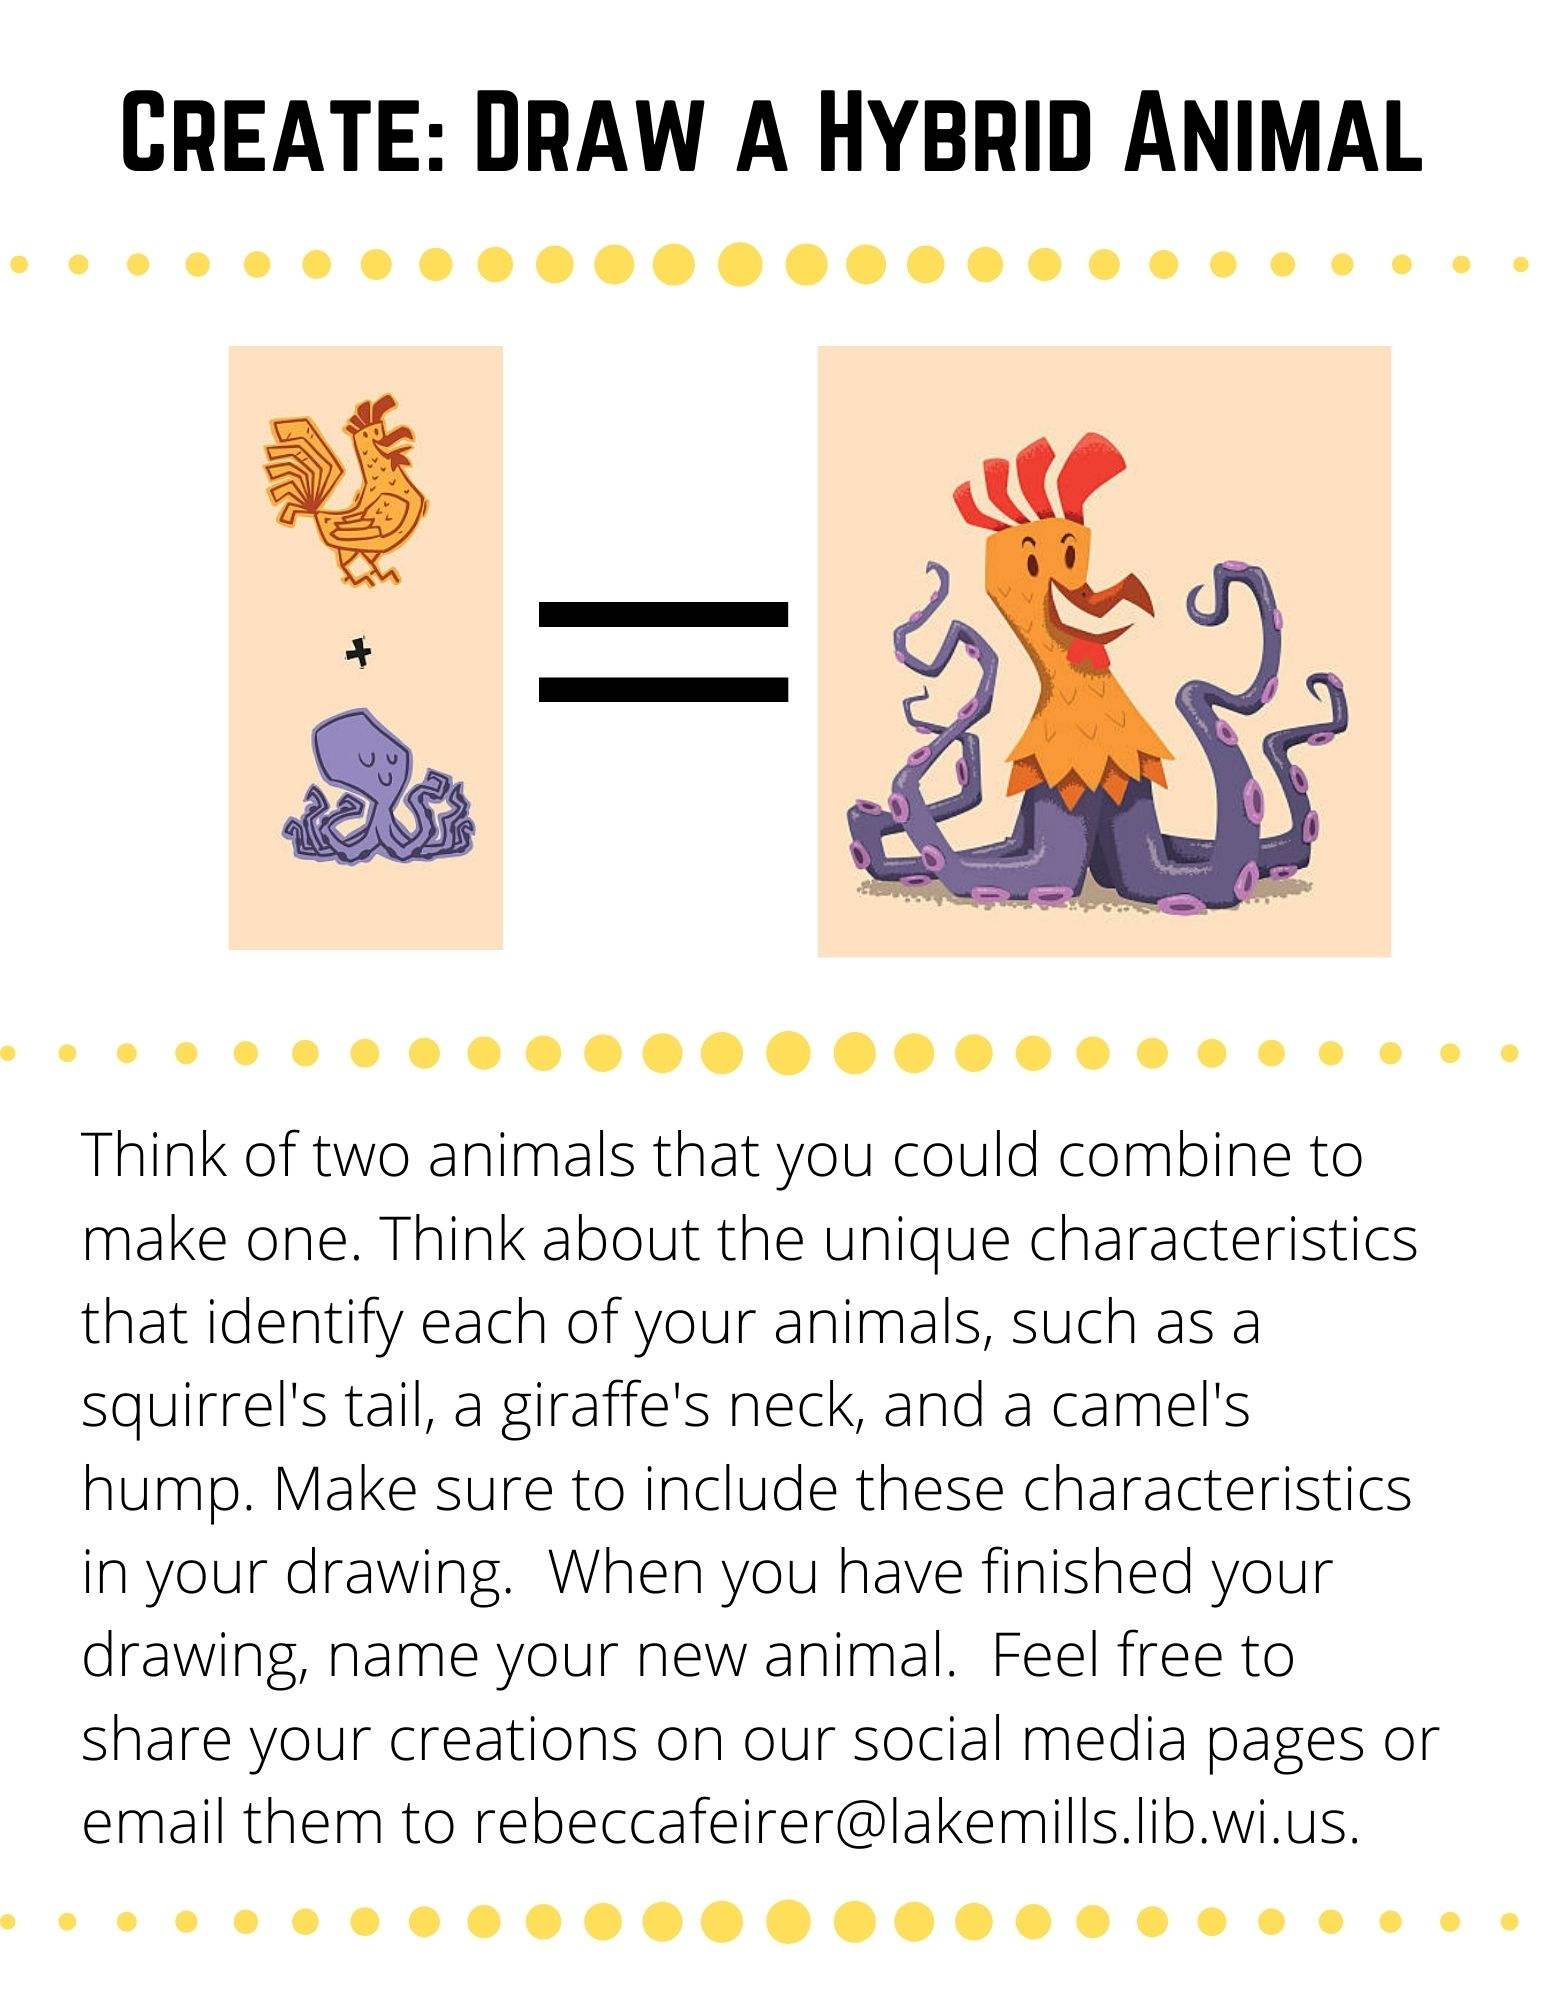 Think of two animals that you could combine to make one. Think about the unique characteristics that identify each of your animals, such as a squirrel's tail, a giraffe's neck, and a camel's hump. Make sure to include these characteristics in your drawing.  When you have finished your drawing, name your new animal.  Feel free to share your creations on our social media pages or email them to rebeccafeirer@lakemills.lib.wi.us.